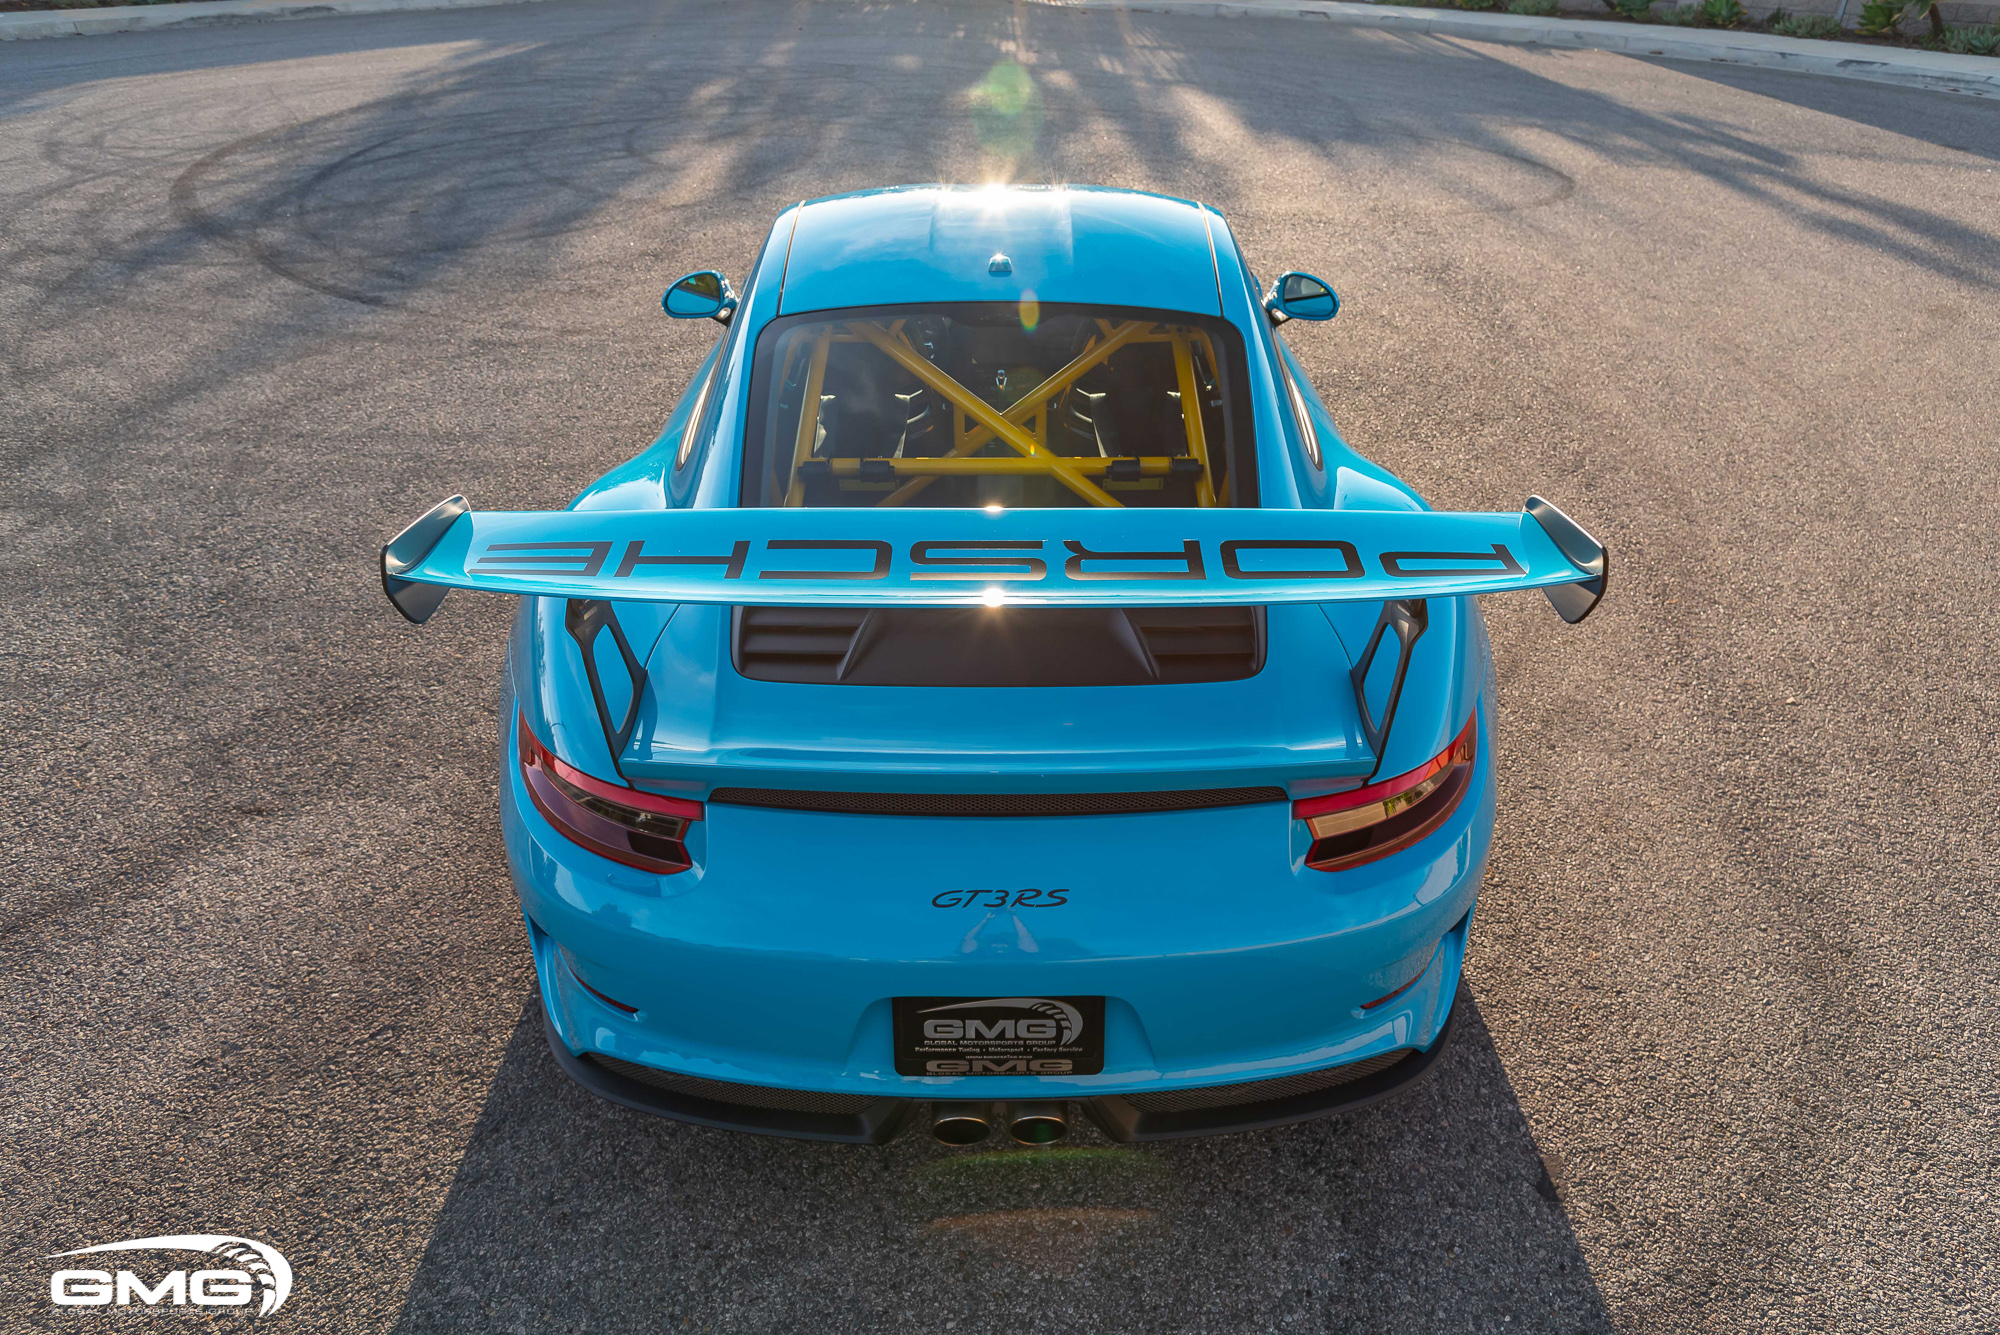 Miami Blue 991.2 GT3 RS